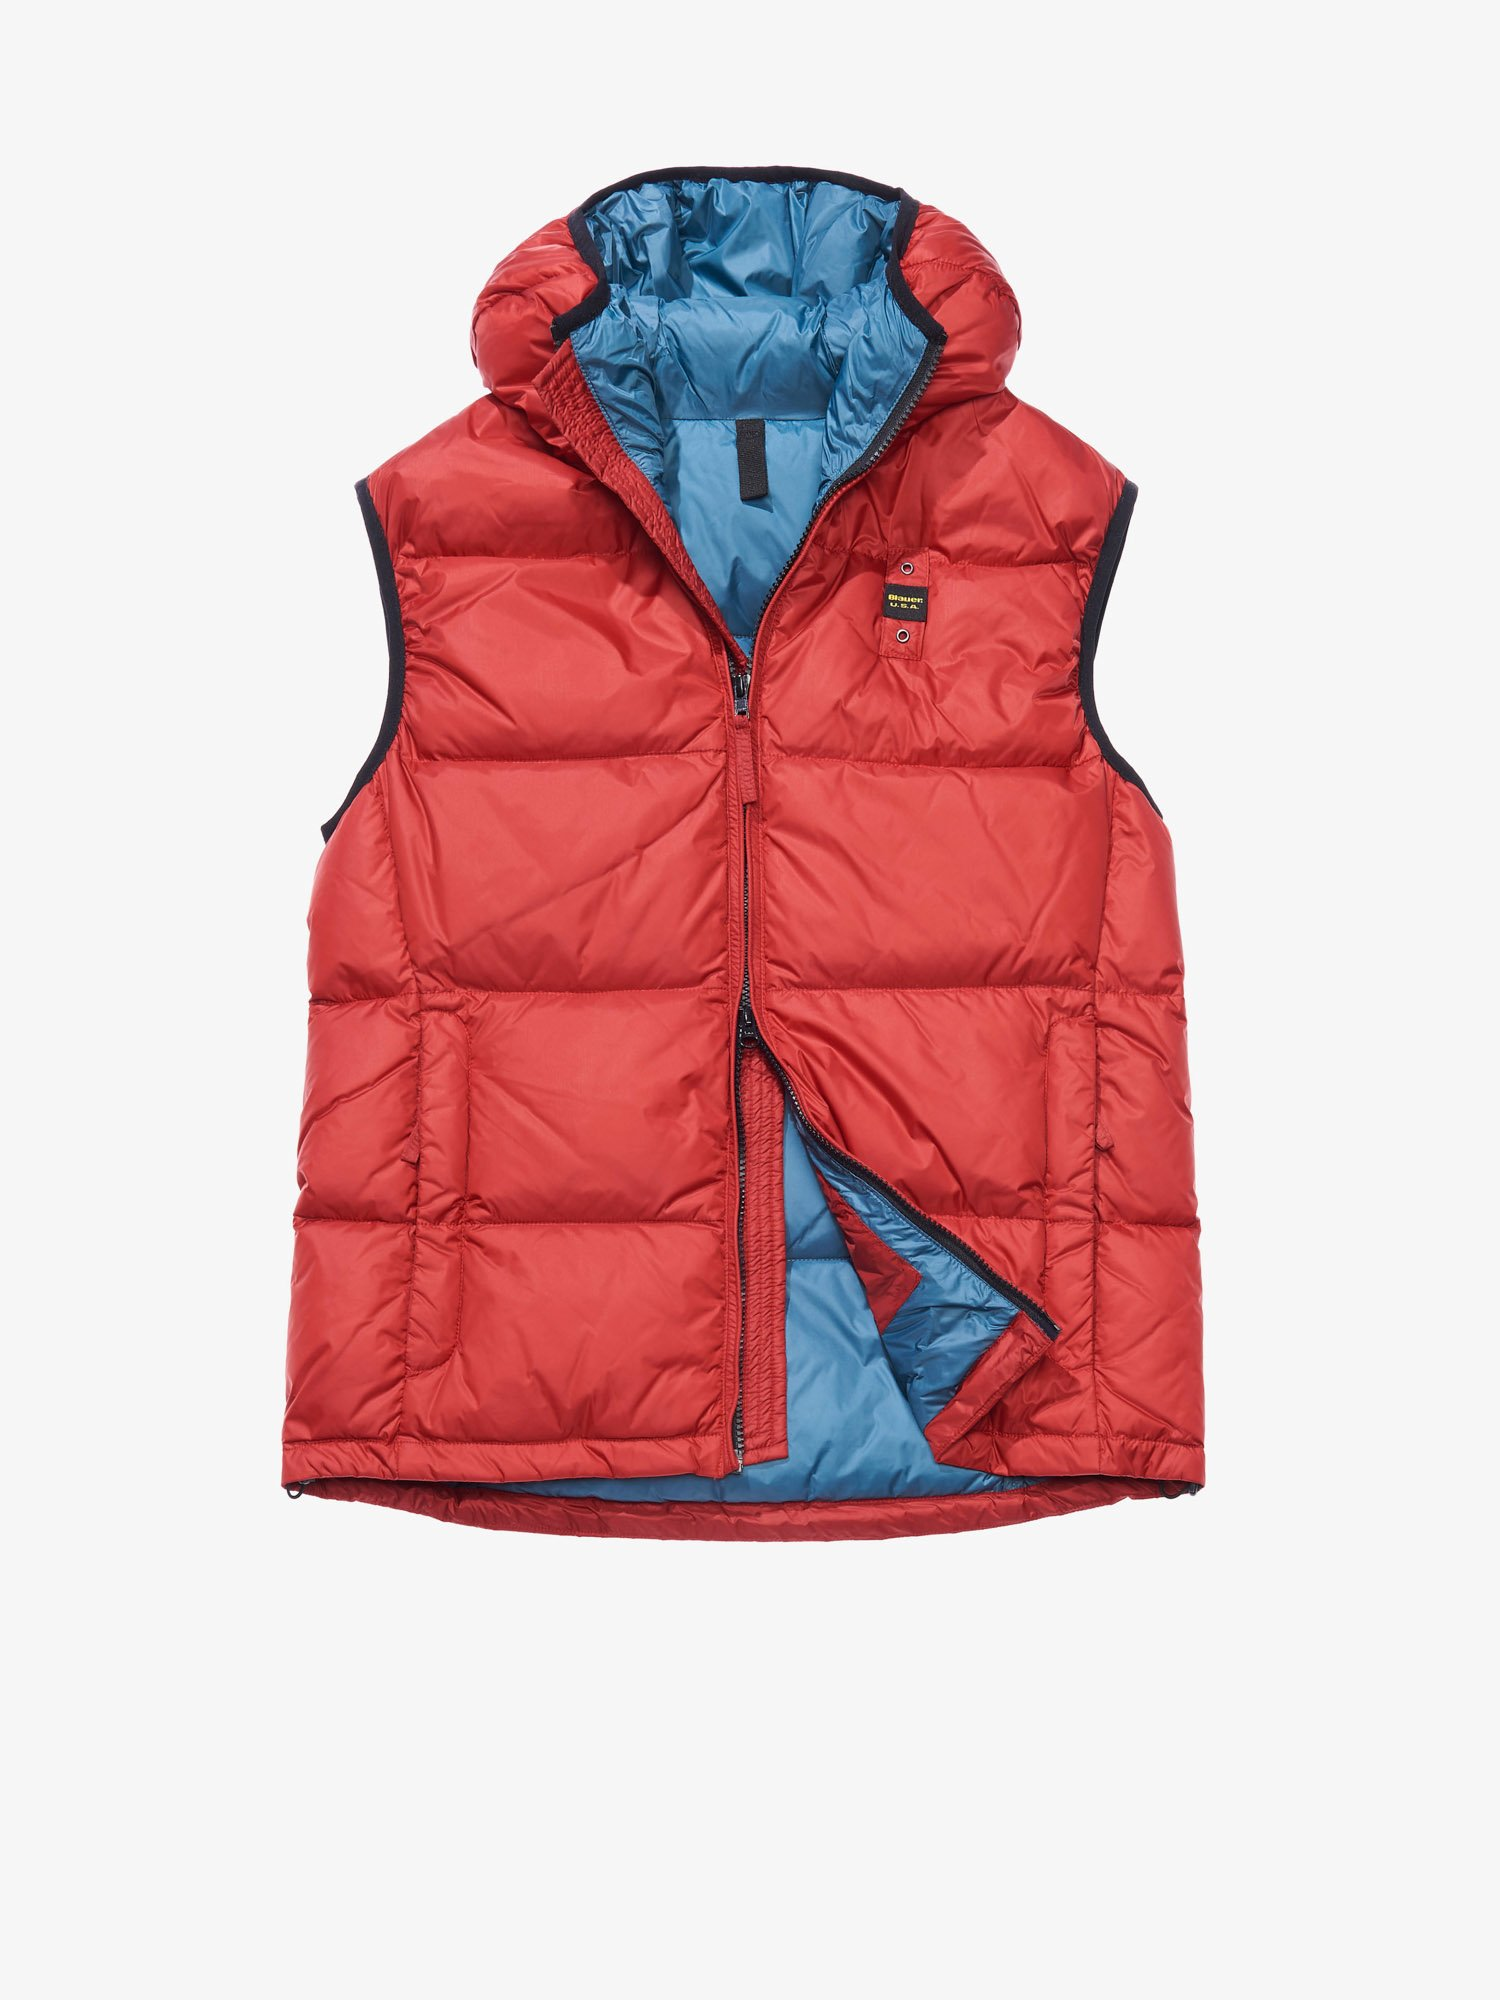 LUIGI HOODED DOWN VEST - Blauer